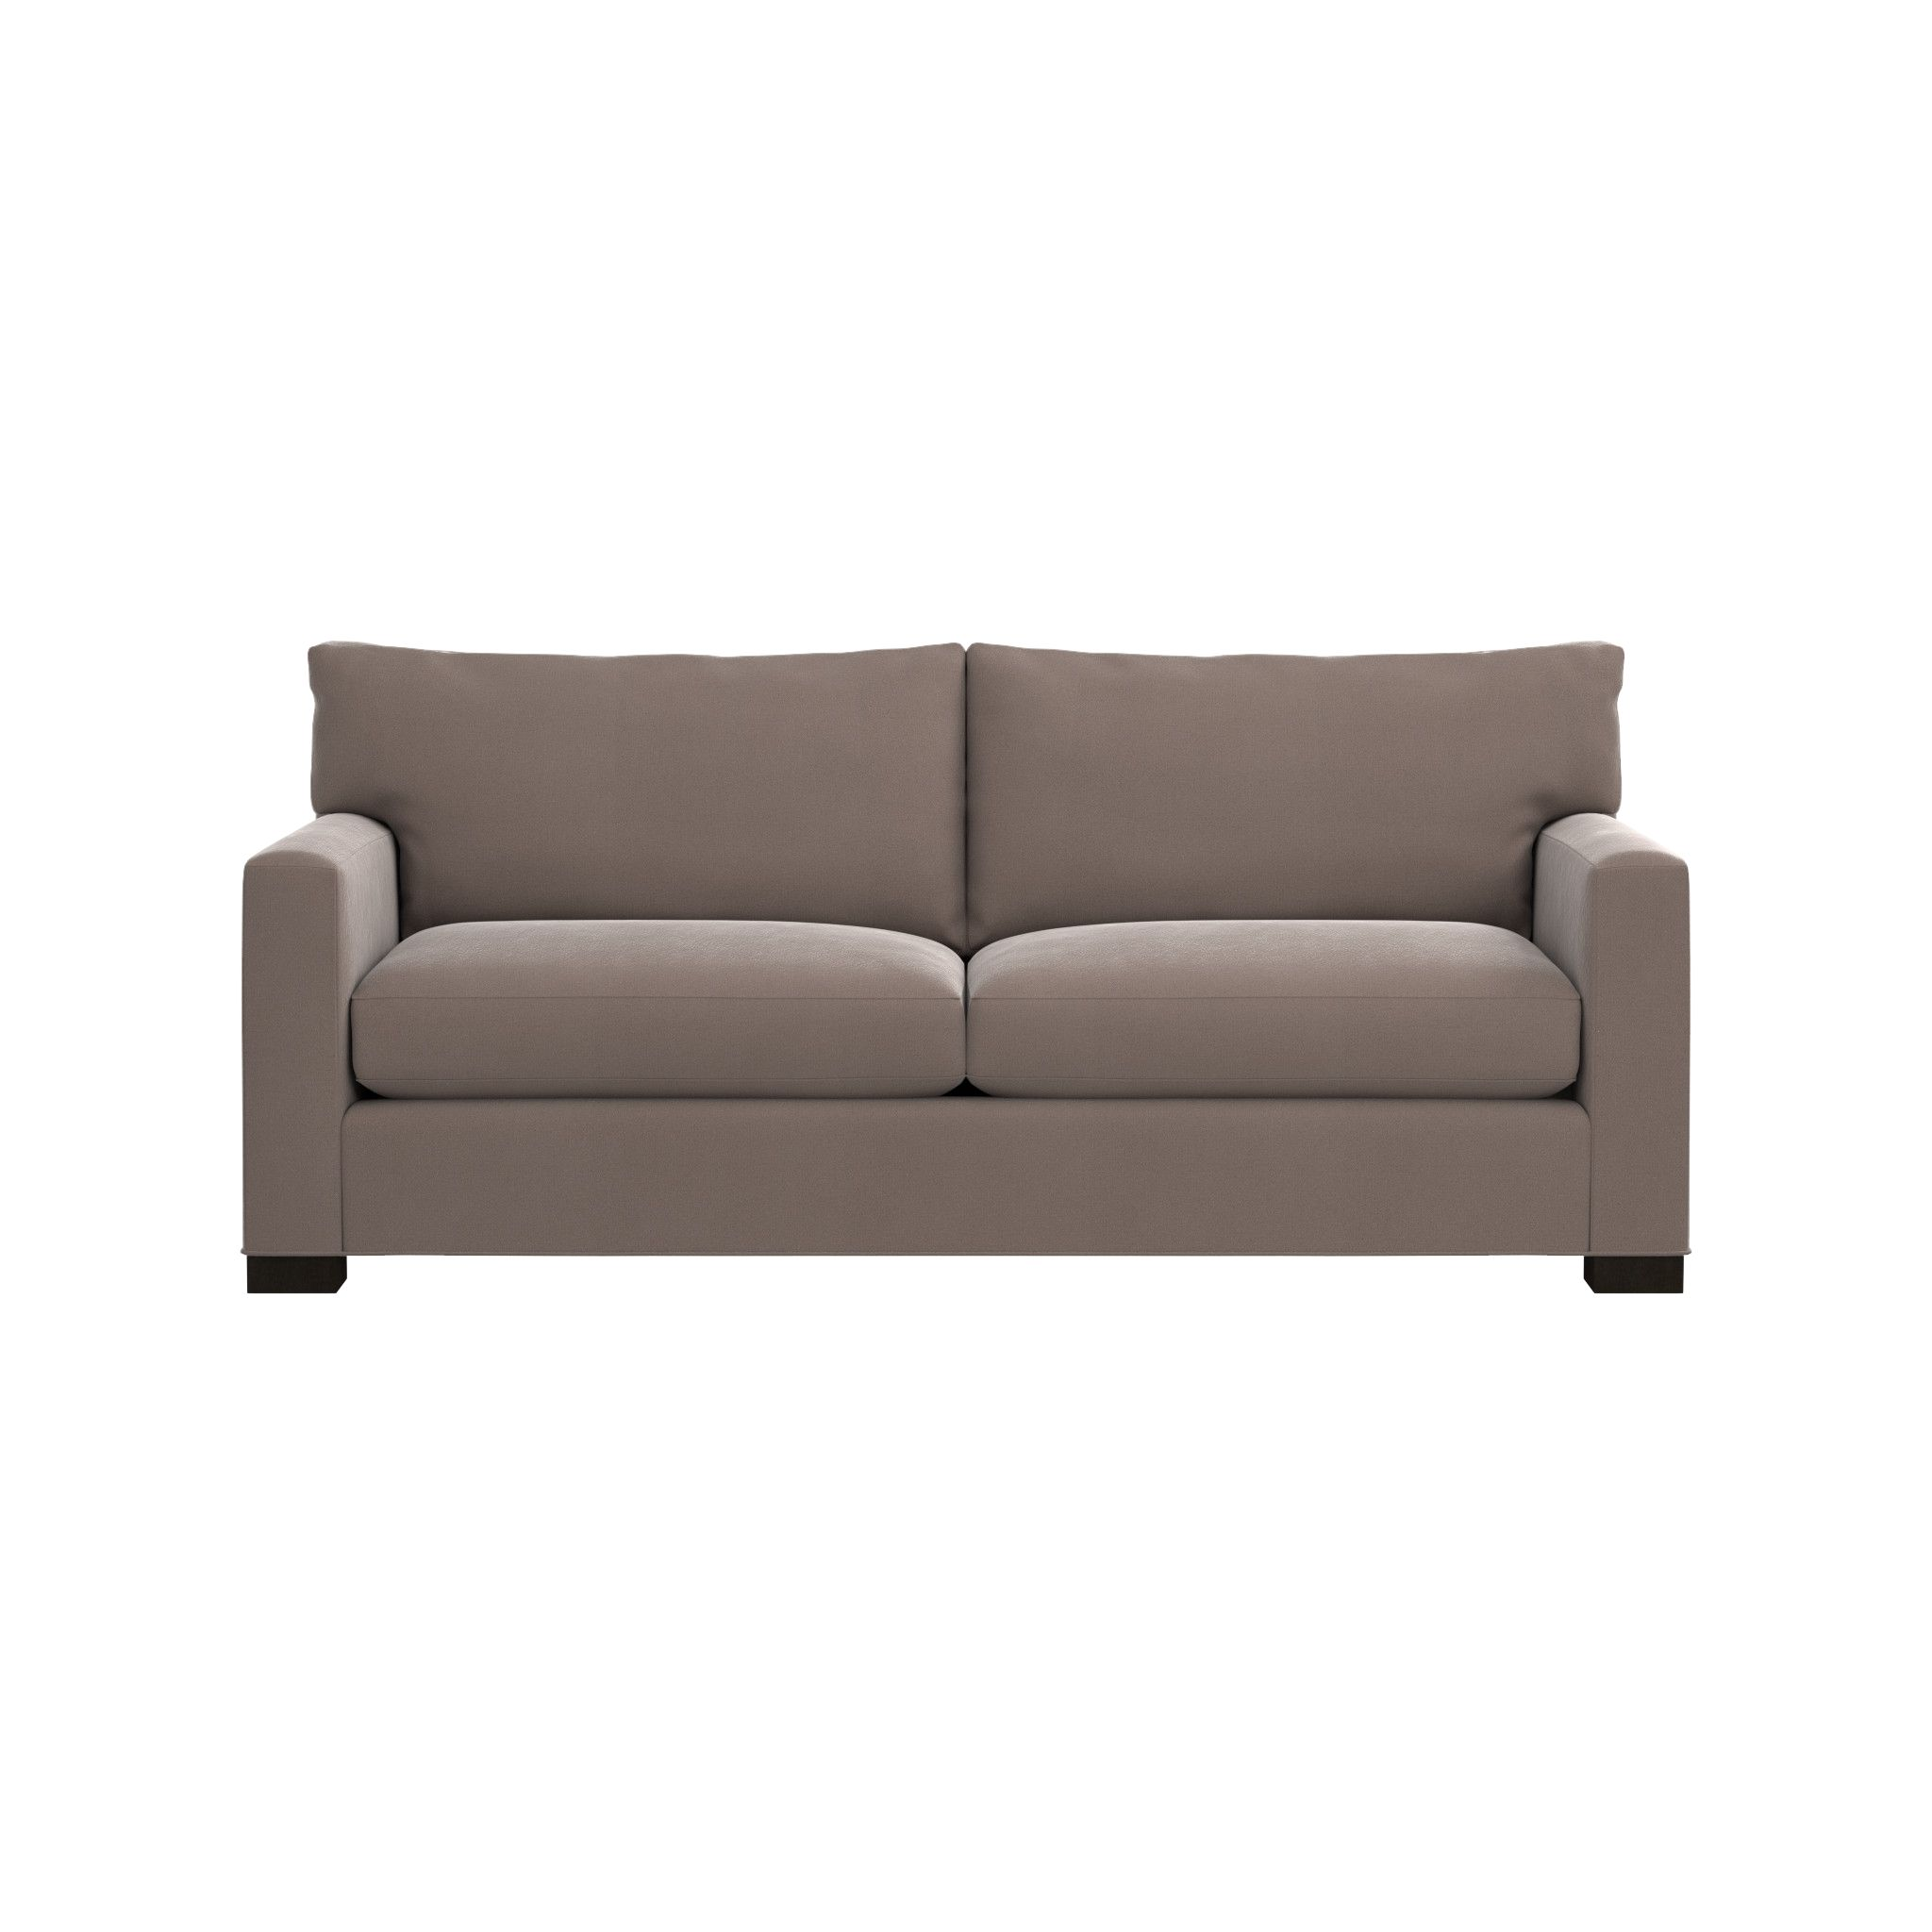 quality sofas for less small size corner furniture crate and barrel style